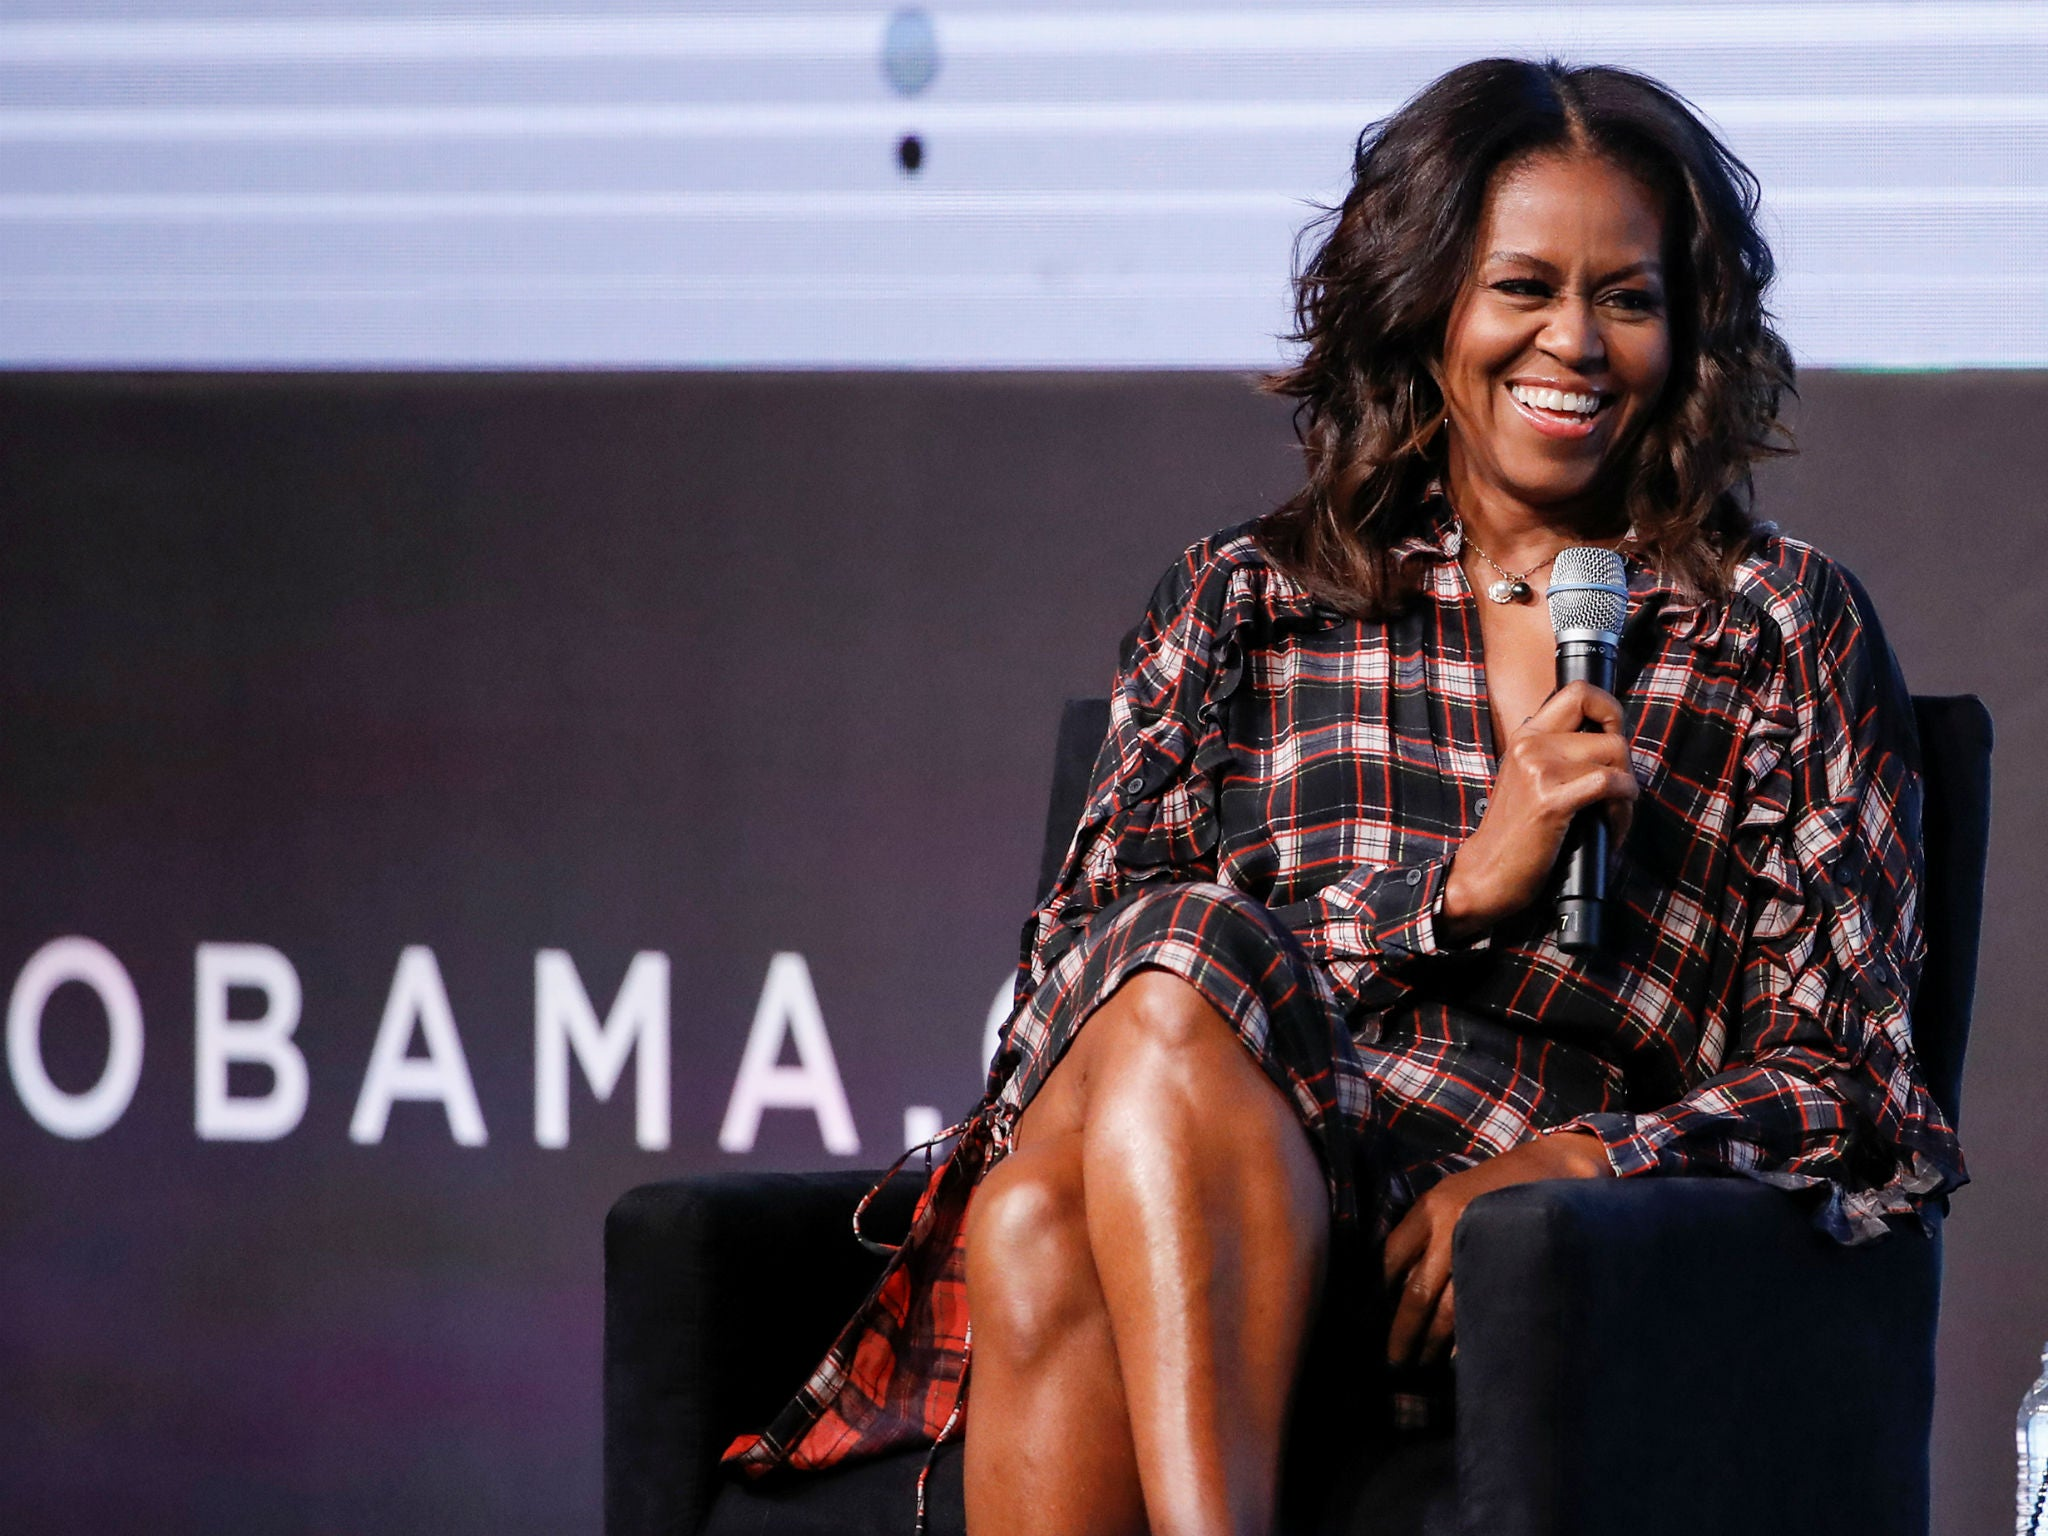 Michelle Obama says she uses social media 'like a grown-up' in apparent Trump reference